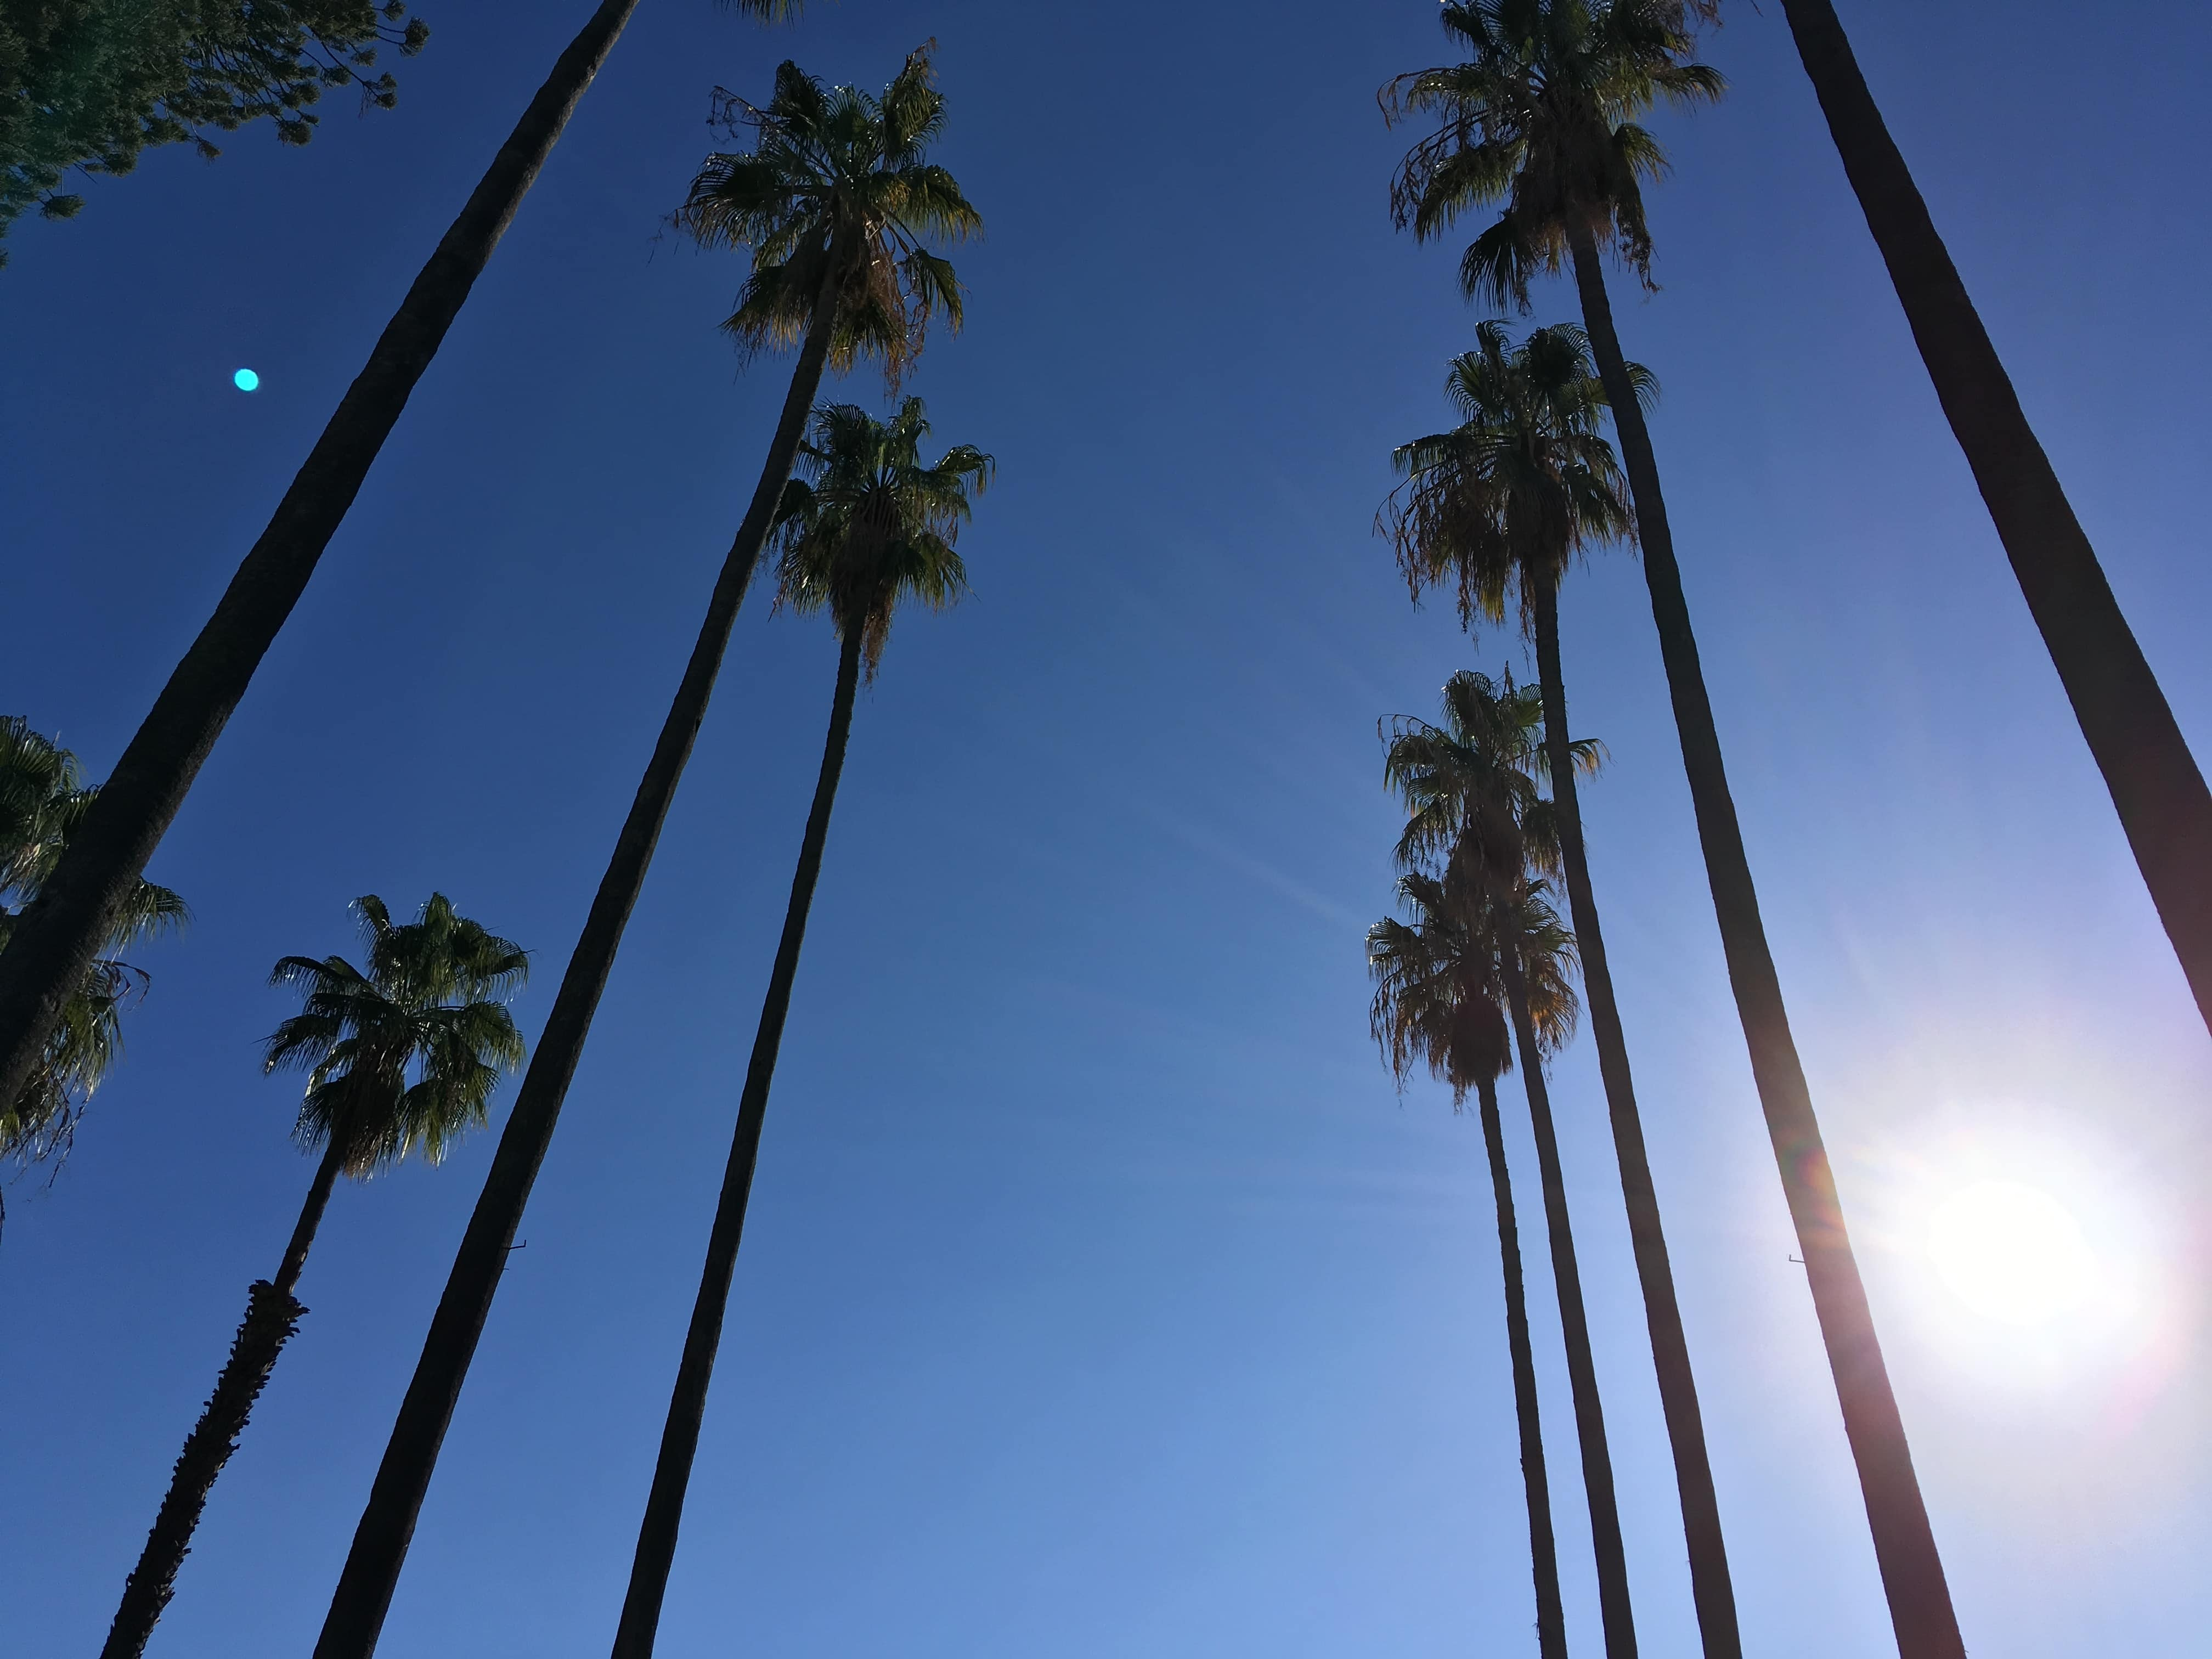 palm trees and blue skies!